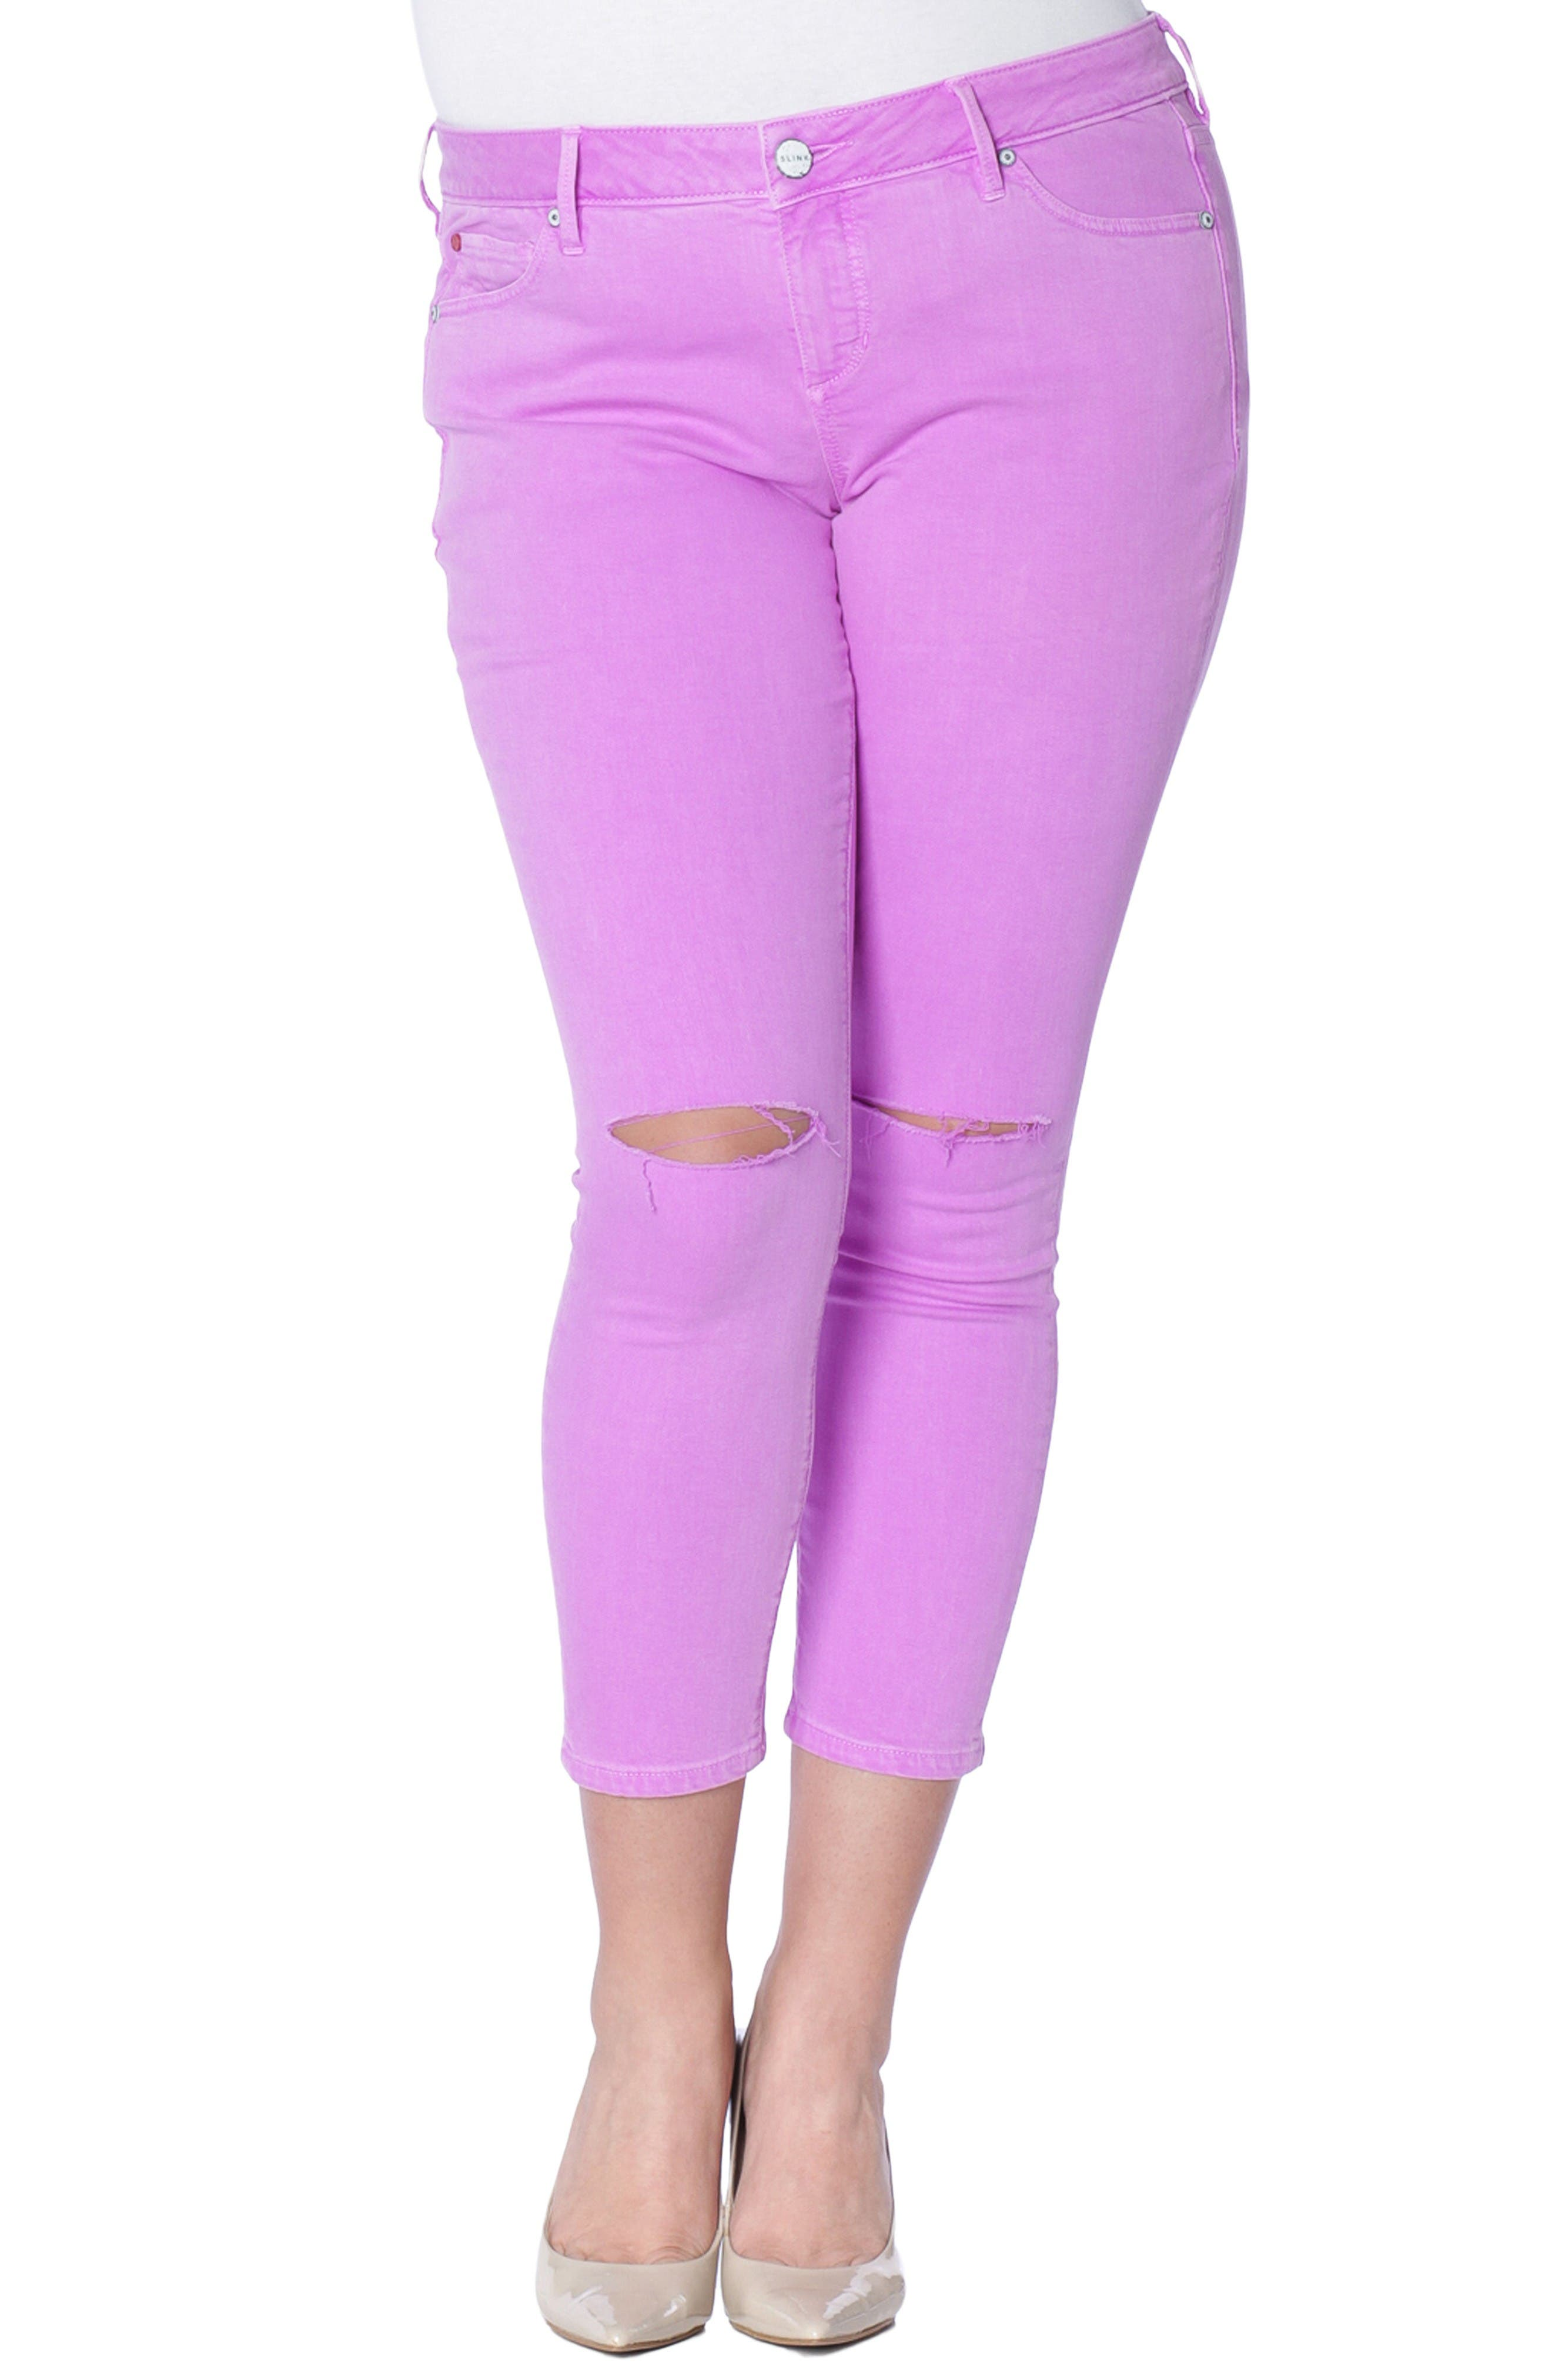 SLINK Jeans Slit Knee Ankle Skinny Jeans (Neon Purple) (Plus Size)